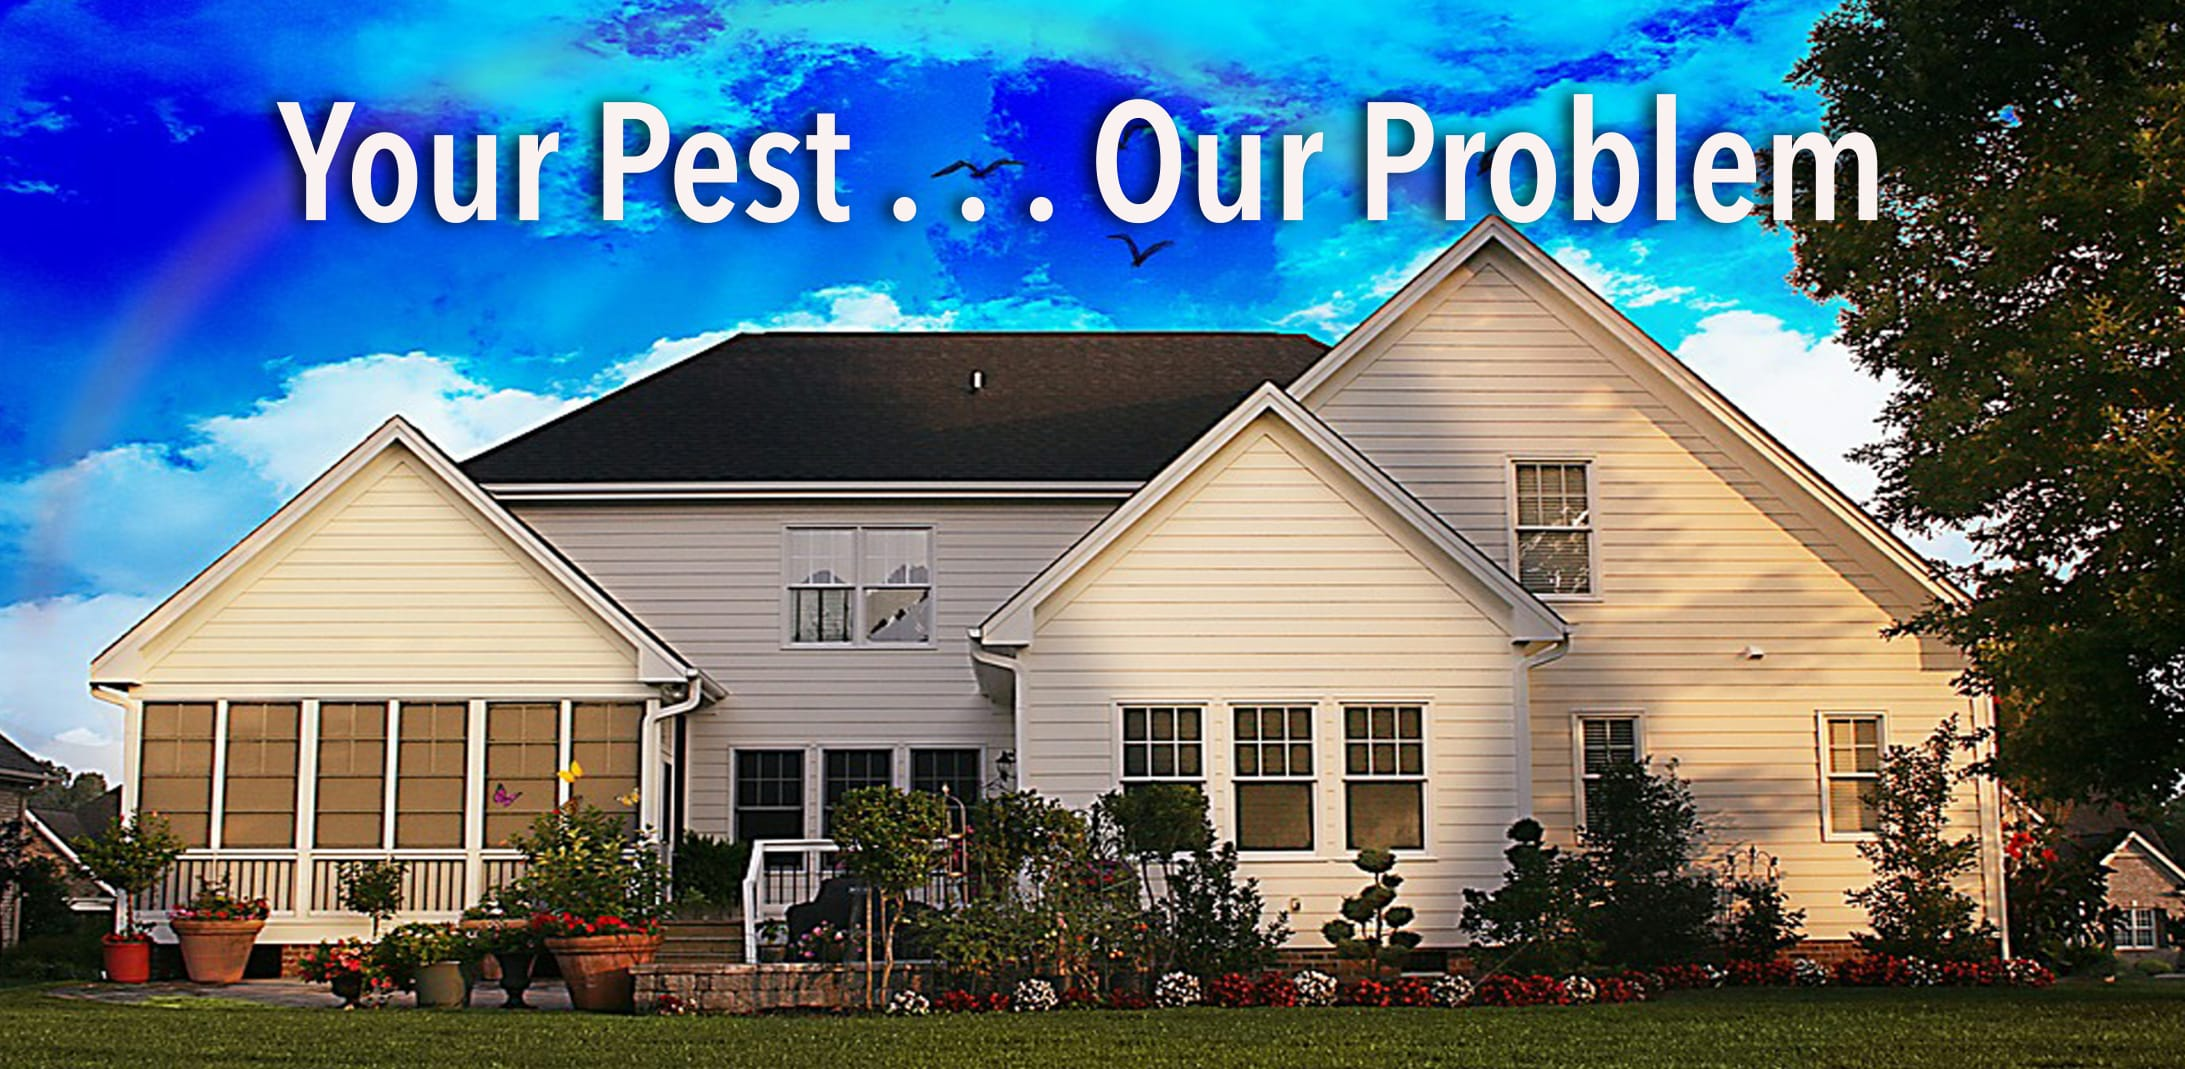 pest control lake success, Rest Easy pest Control, Pest control services, Long Island NY, NYC, Rockland, Westchester, New York, Long Island, Pest Control, Exterminator, Brooklyn, Bronx, Staten Island, NY, exterminator, Nassau County, Suffolk County, bugs, bed bugs, organic pest control, organic exterminator, organic pest, Getting a termite infestation problem under control quickly, contact us, rest easy, pest control, exterminator, nyc, new york city, brooklyn, queens, nassau, suffolk, new york, rockland westchester, bed bugs, organic pest, Rest Easy pest Control, Pest control services, Long Island NY, NYC, Rockland, Westchester, New York, Long Island, Pest Control, Exterminator, Brooklyn, Bronx, Staten Island, NY, exterminator, Nassau County, Suffolk County, bugs, bed bugs, organic pest control, organic exterminator, organic pest, ants,